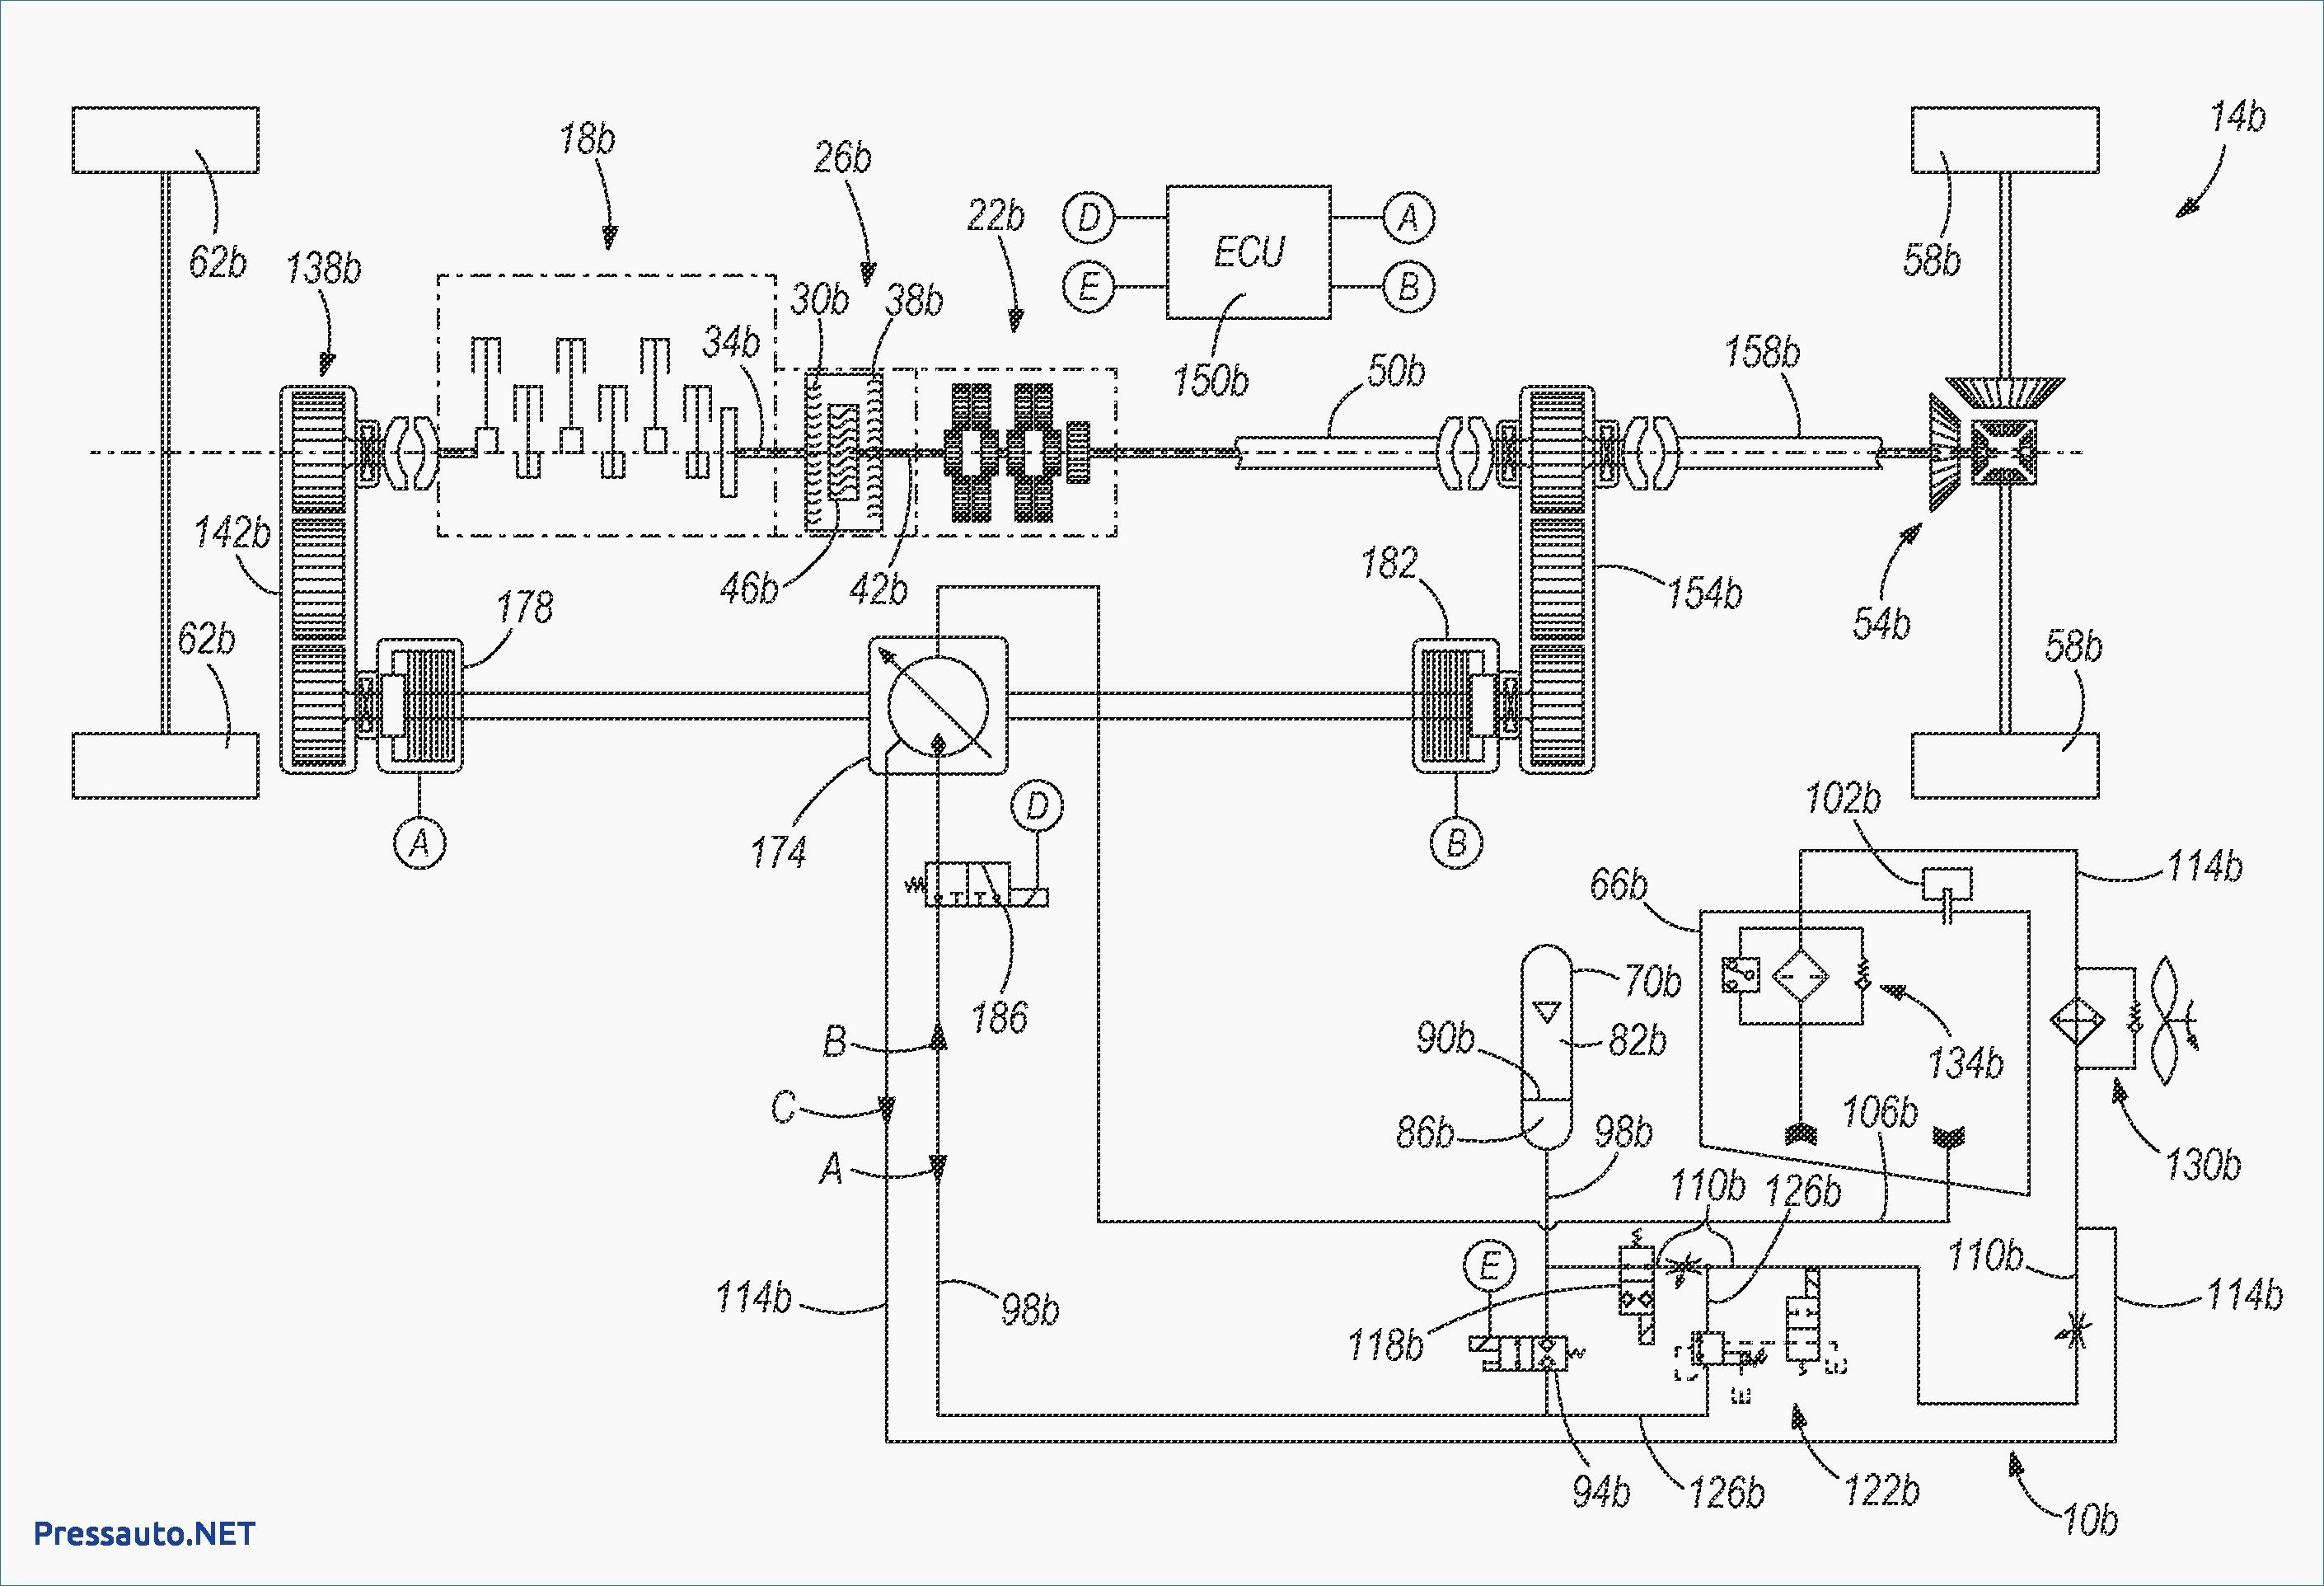 mahindra tractor electrical wiring diagrams wire management mahindra scorpio wiring diagram pdf mahindra 2216 wiring diagram [ 2820 x 1924 Pixel ]